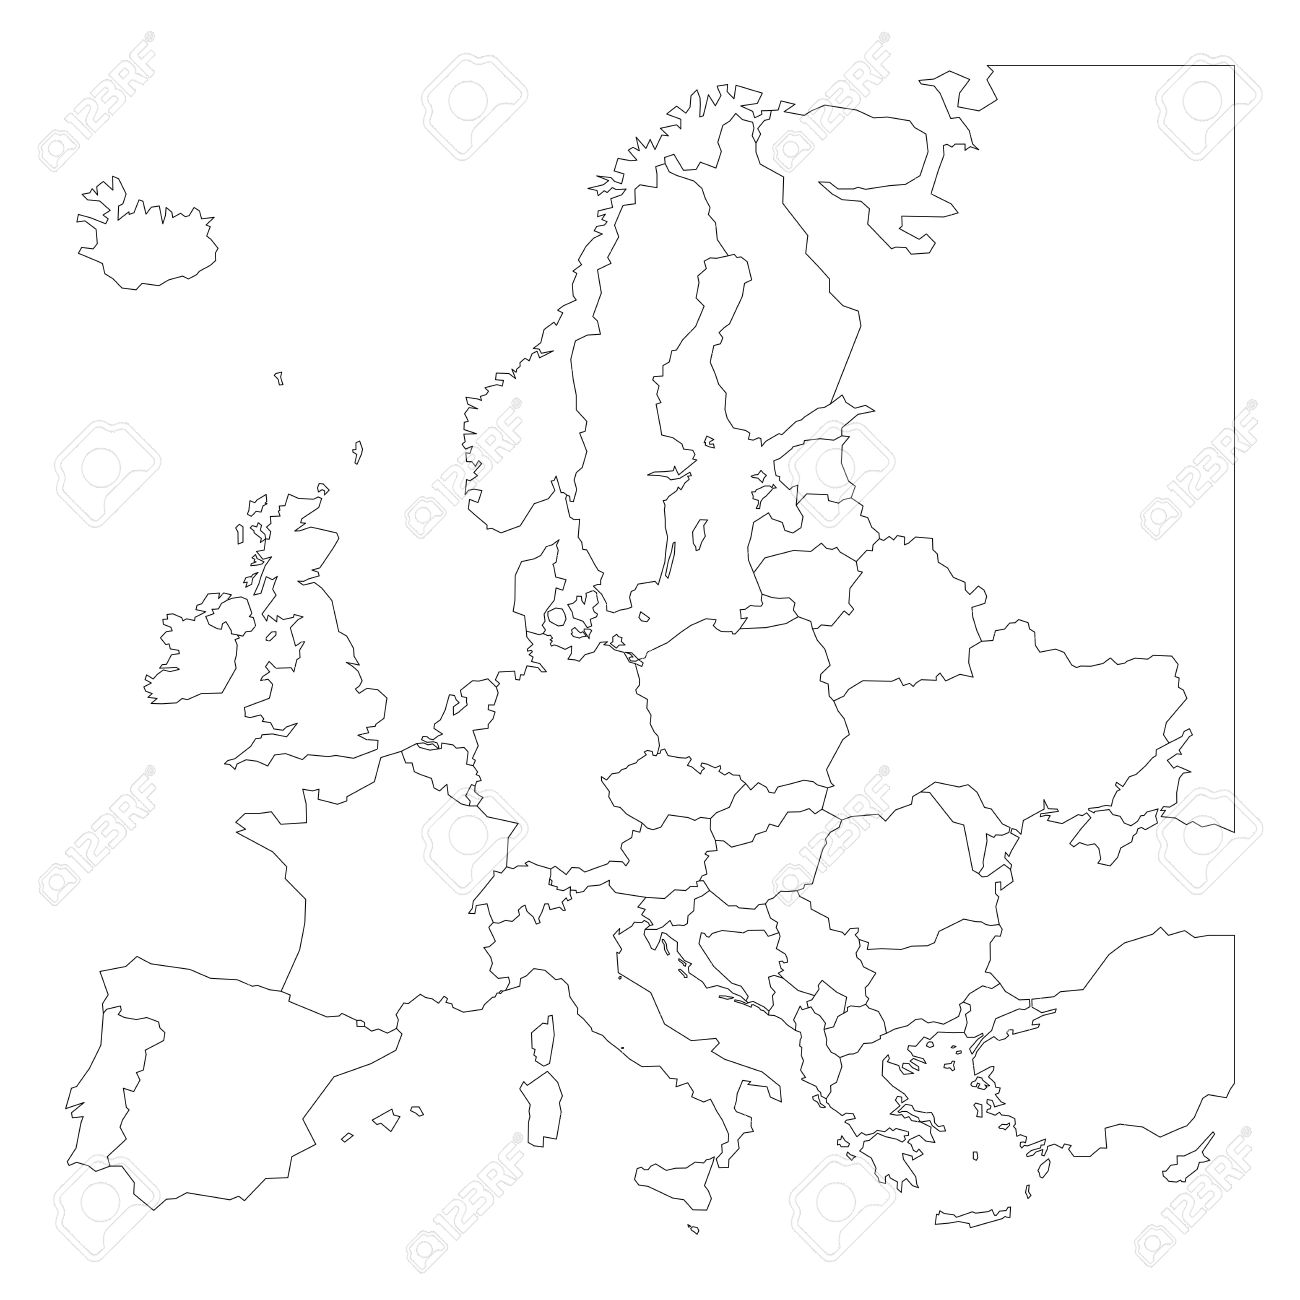 carte de l europe noir et blanc Blank Outline Map Of Europe. Simplified Vector Map Made Of Black